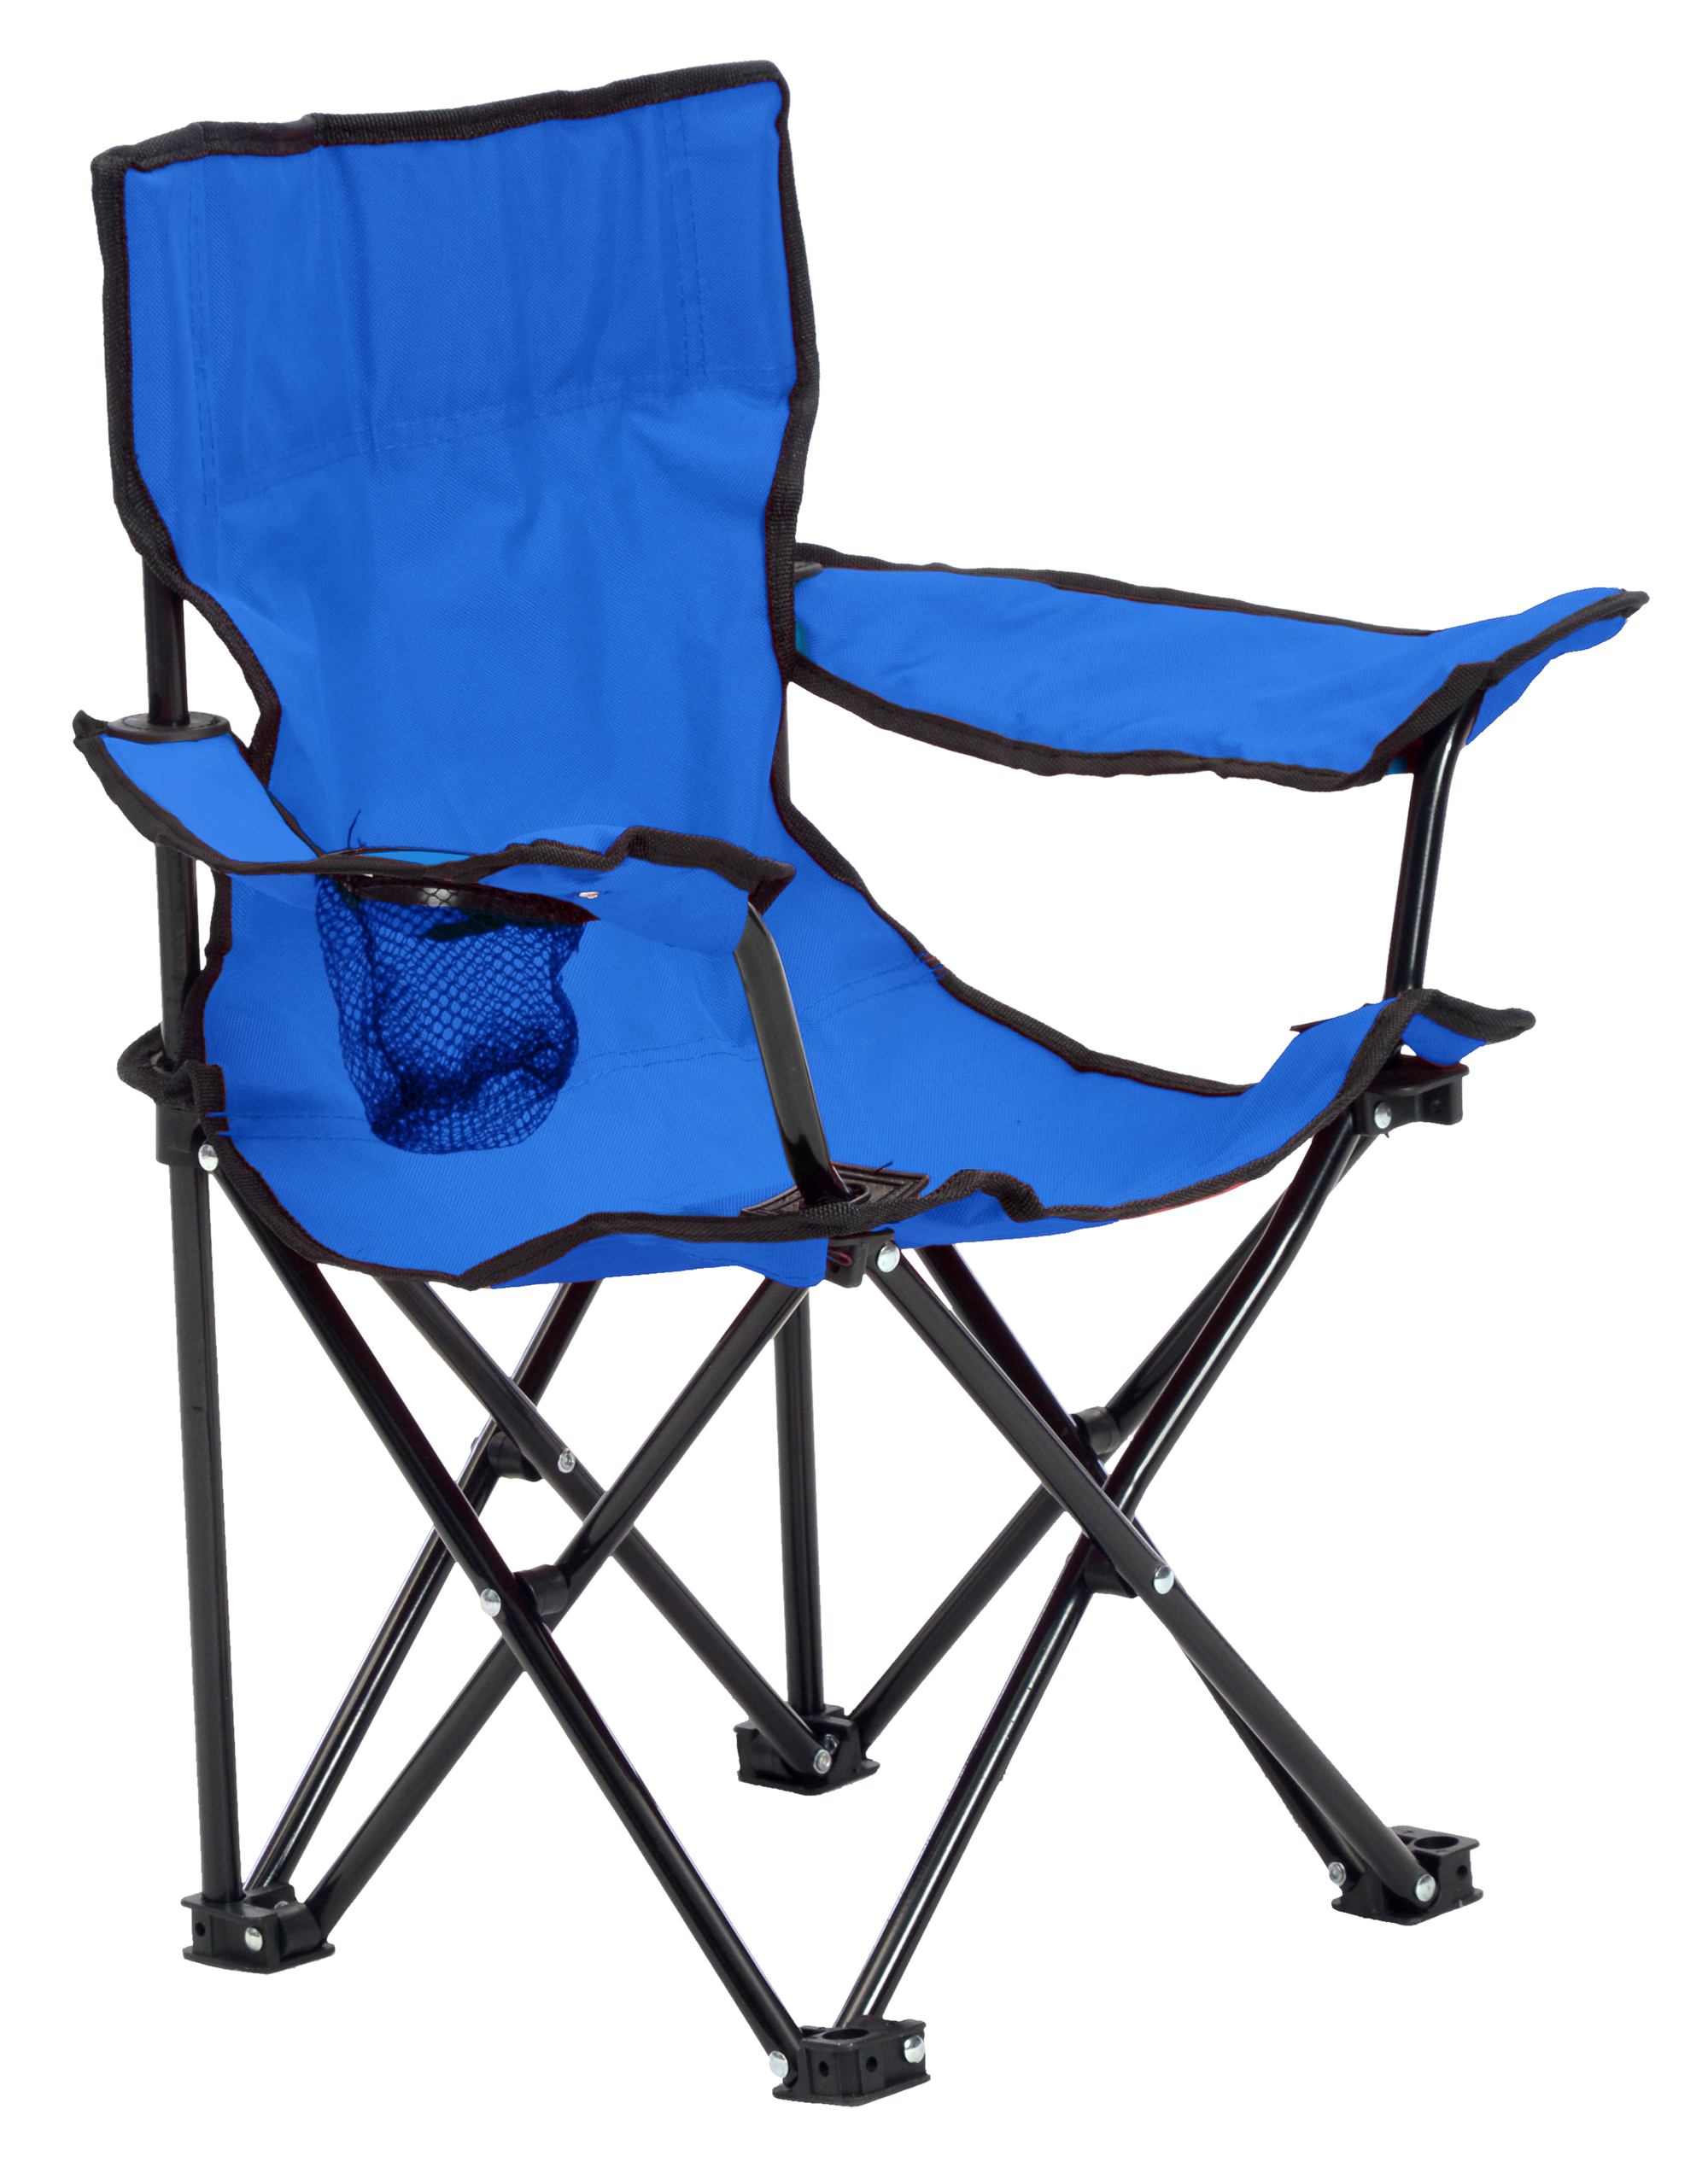 KIDS CHAIR BLUE/BLACK